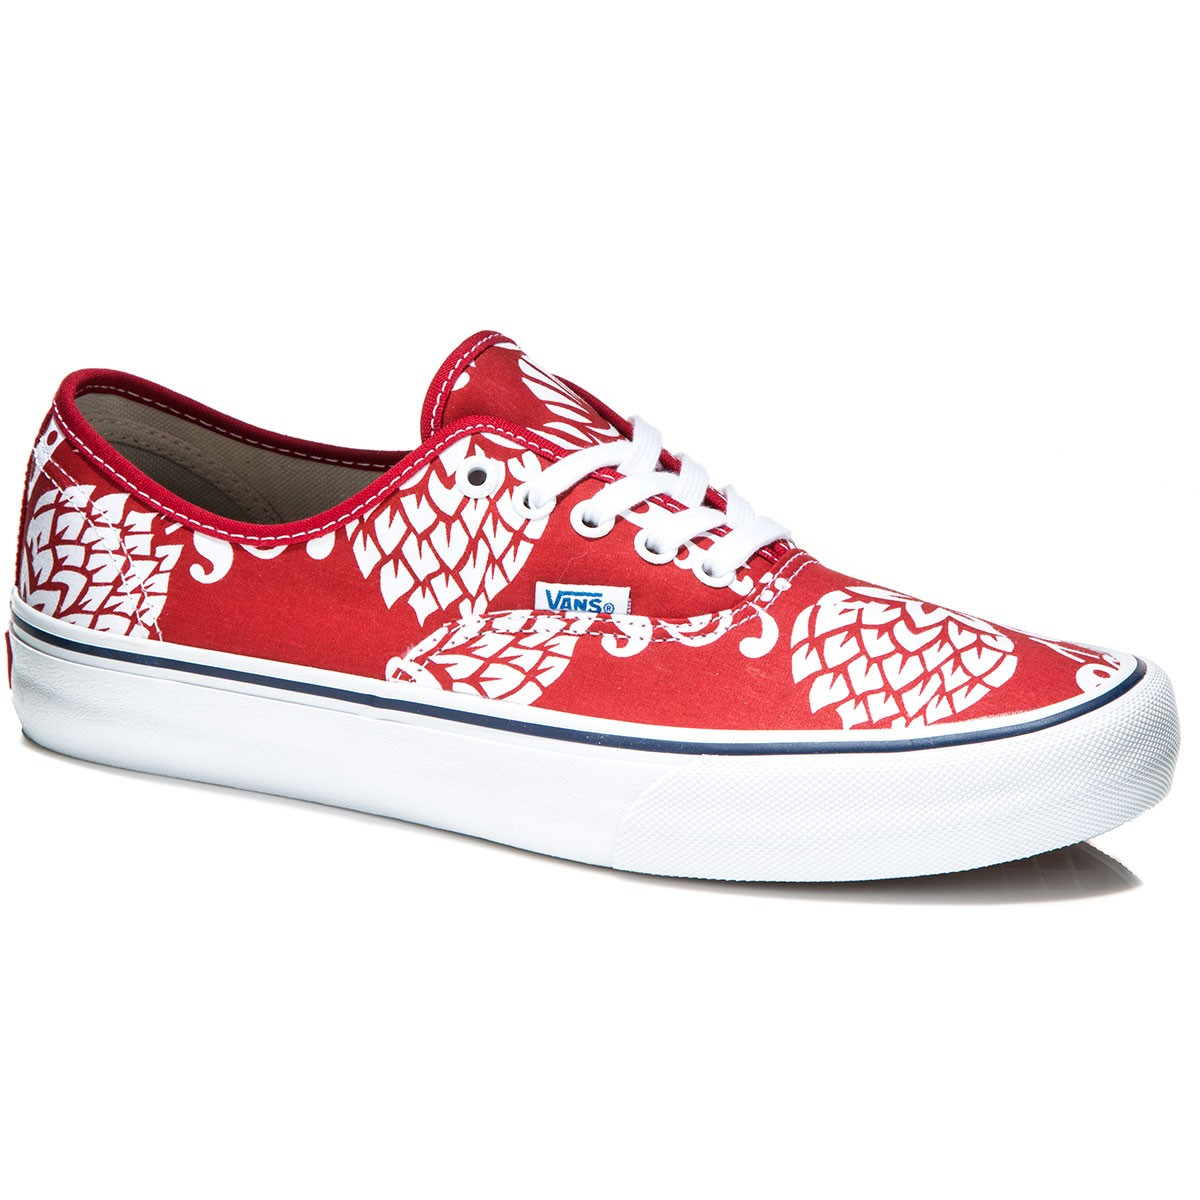 b3282ff023 Vans Authentic Pro Shoes - Duke Red White - 8.0